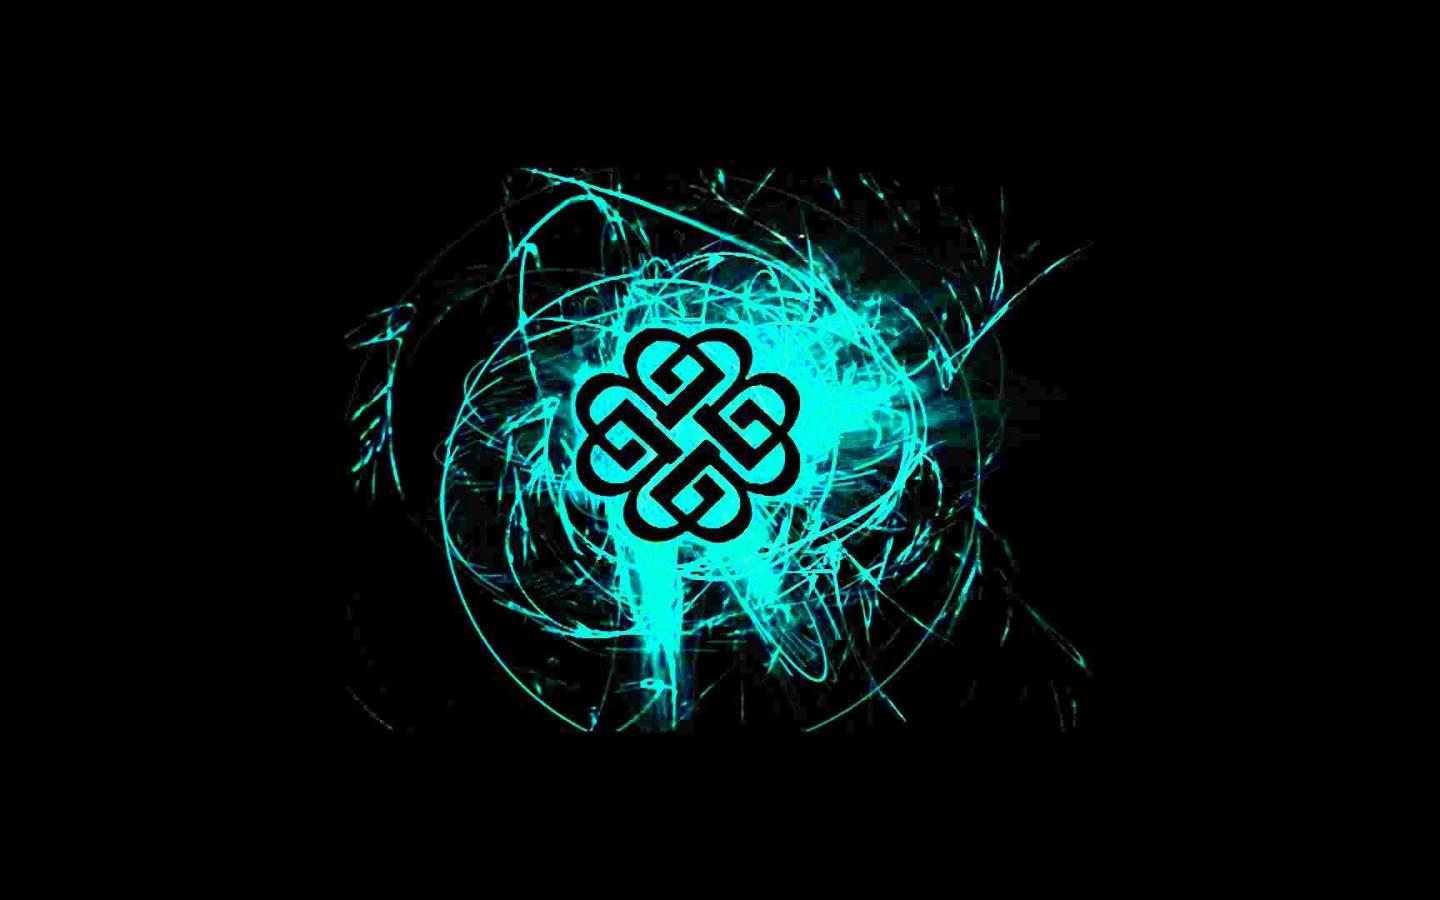 Breaking Benjamin Wallpaper 3   1920 X 1080 stmednet 1440x900